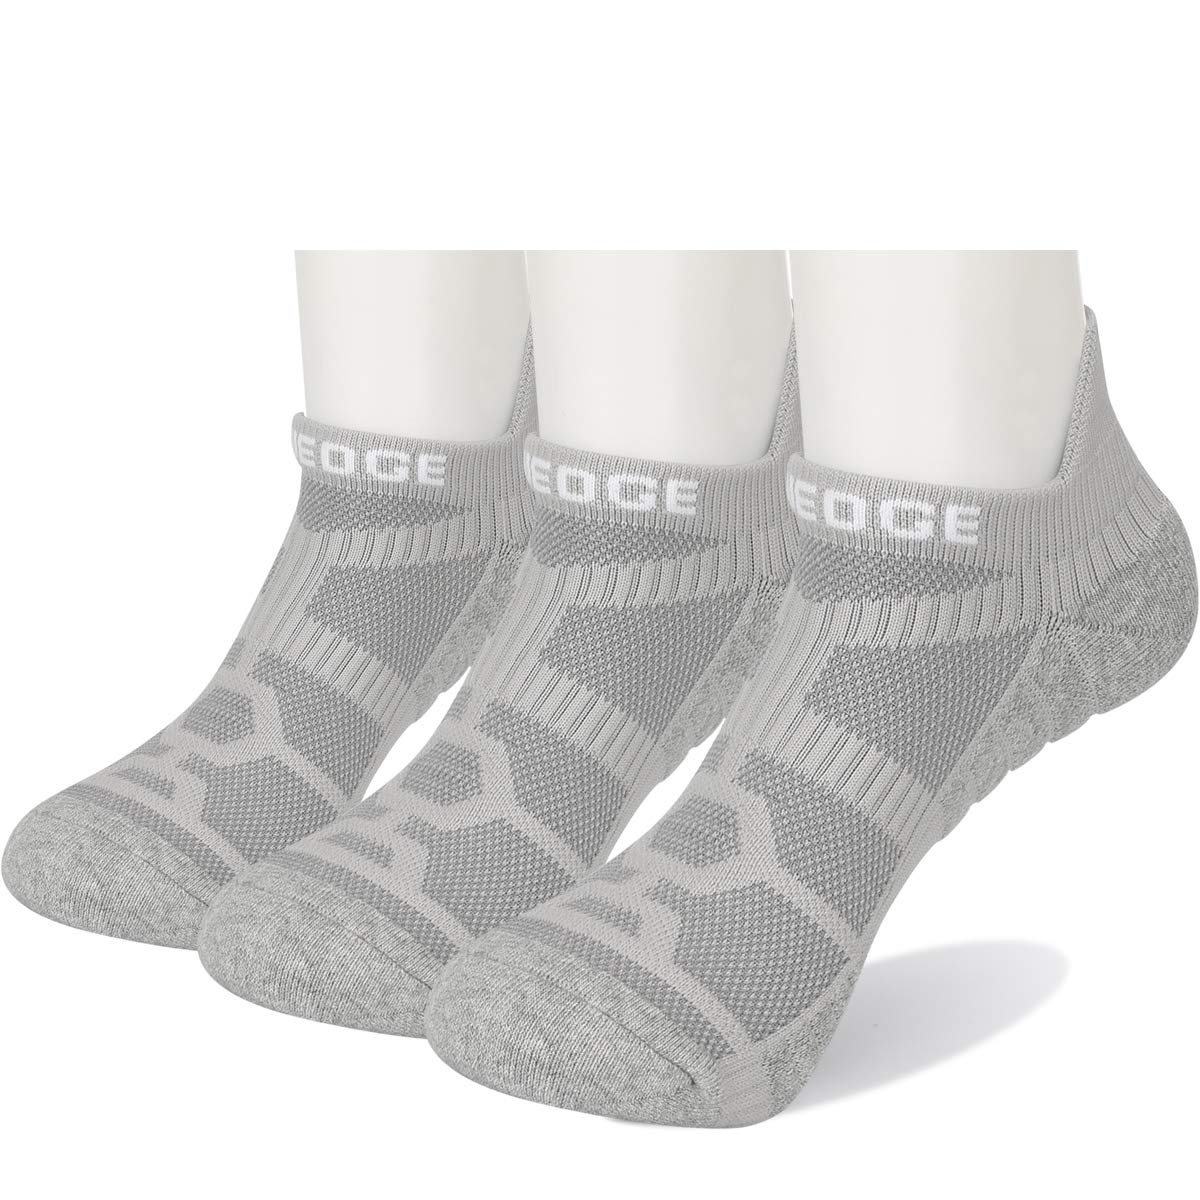 YUEDGE Athletic Ankle Socks Comfort Breathable Moisture Wicking No Show Running Low Cut Socks for Men Size 6-12